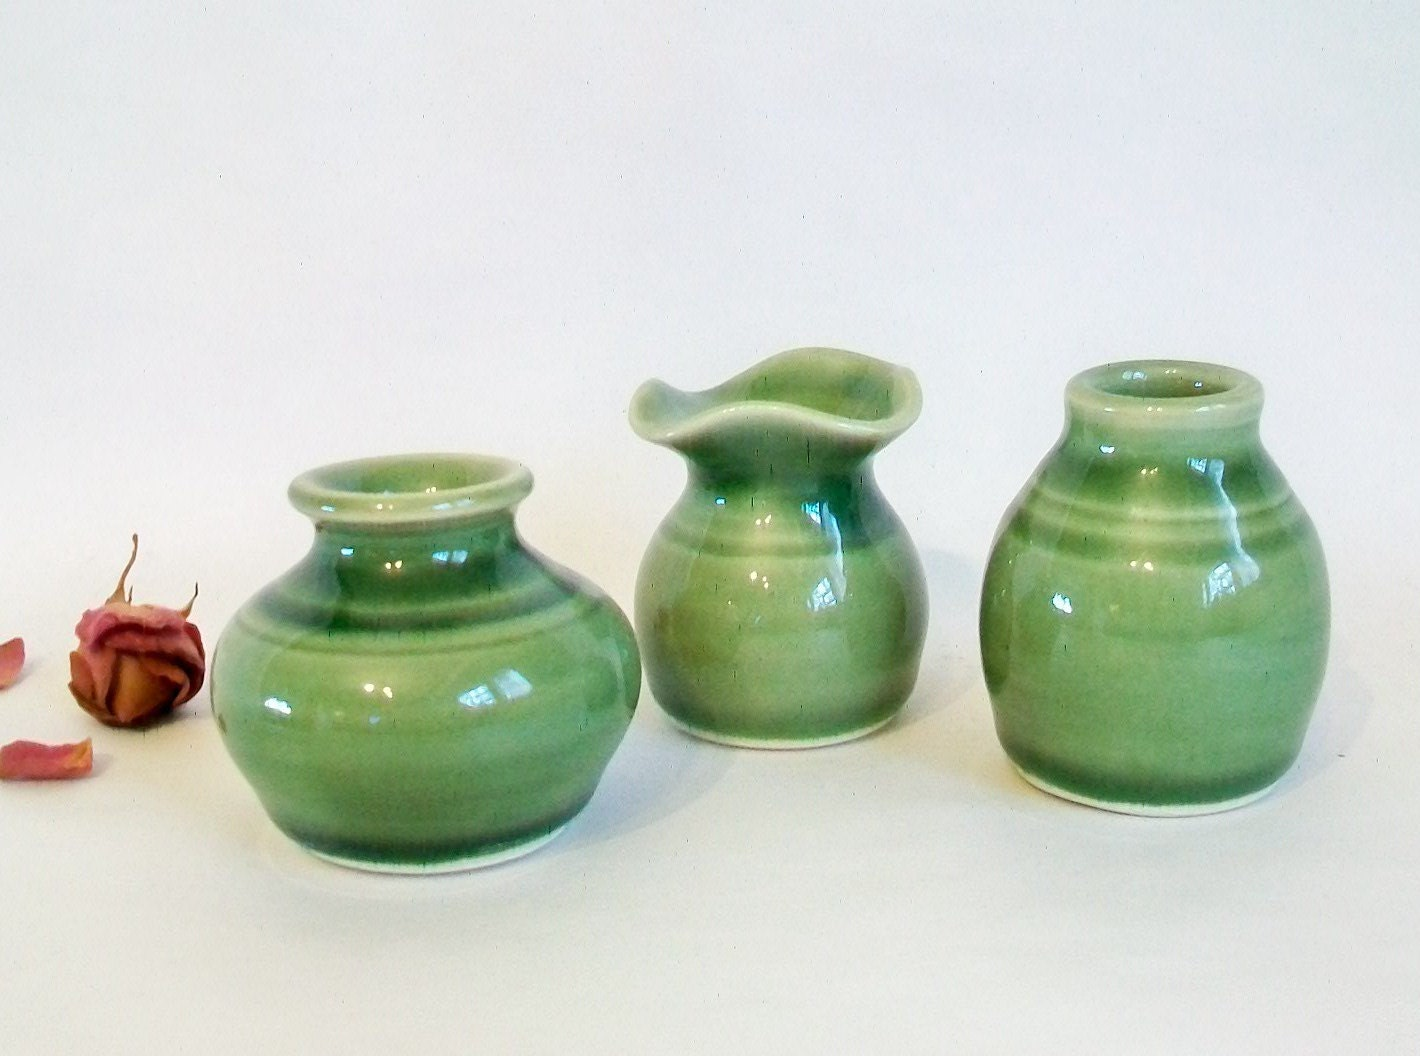 gl vase urn with Little Vases Set Of 3 Small Green Vases on Gold Carnival Glass Vase Urn Bottle With in addition Search as well Urns Planters Vases Furniture likewise Little Vases Set Of 3 Small Green Vases besides Vases With Lids.